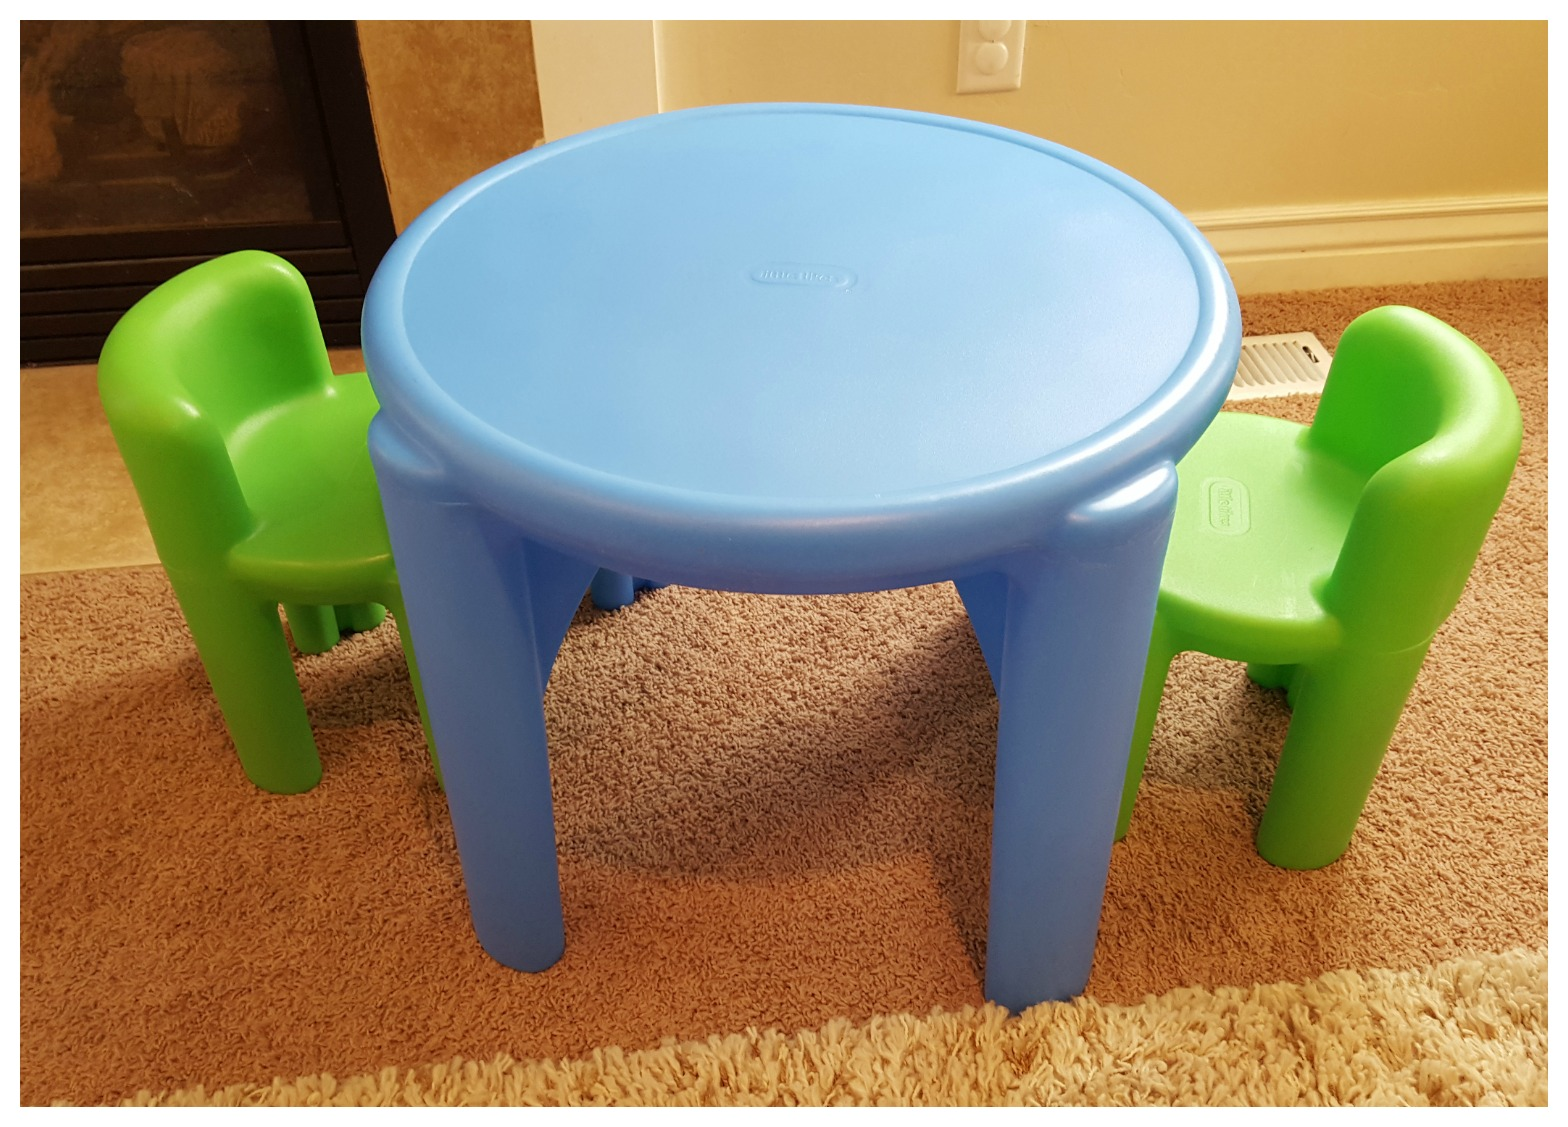 Little tikes adjustable table and chairs - As Always I Love That Little Tikes